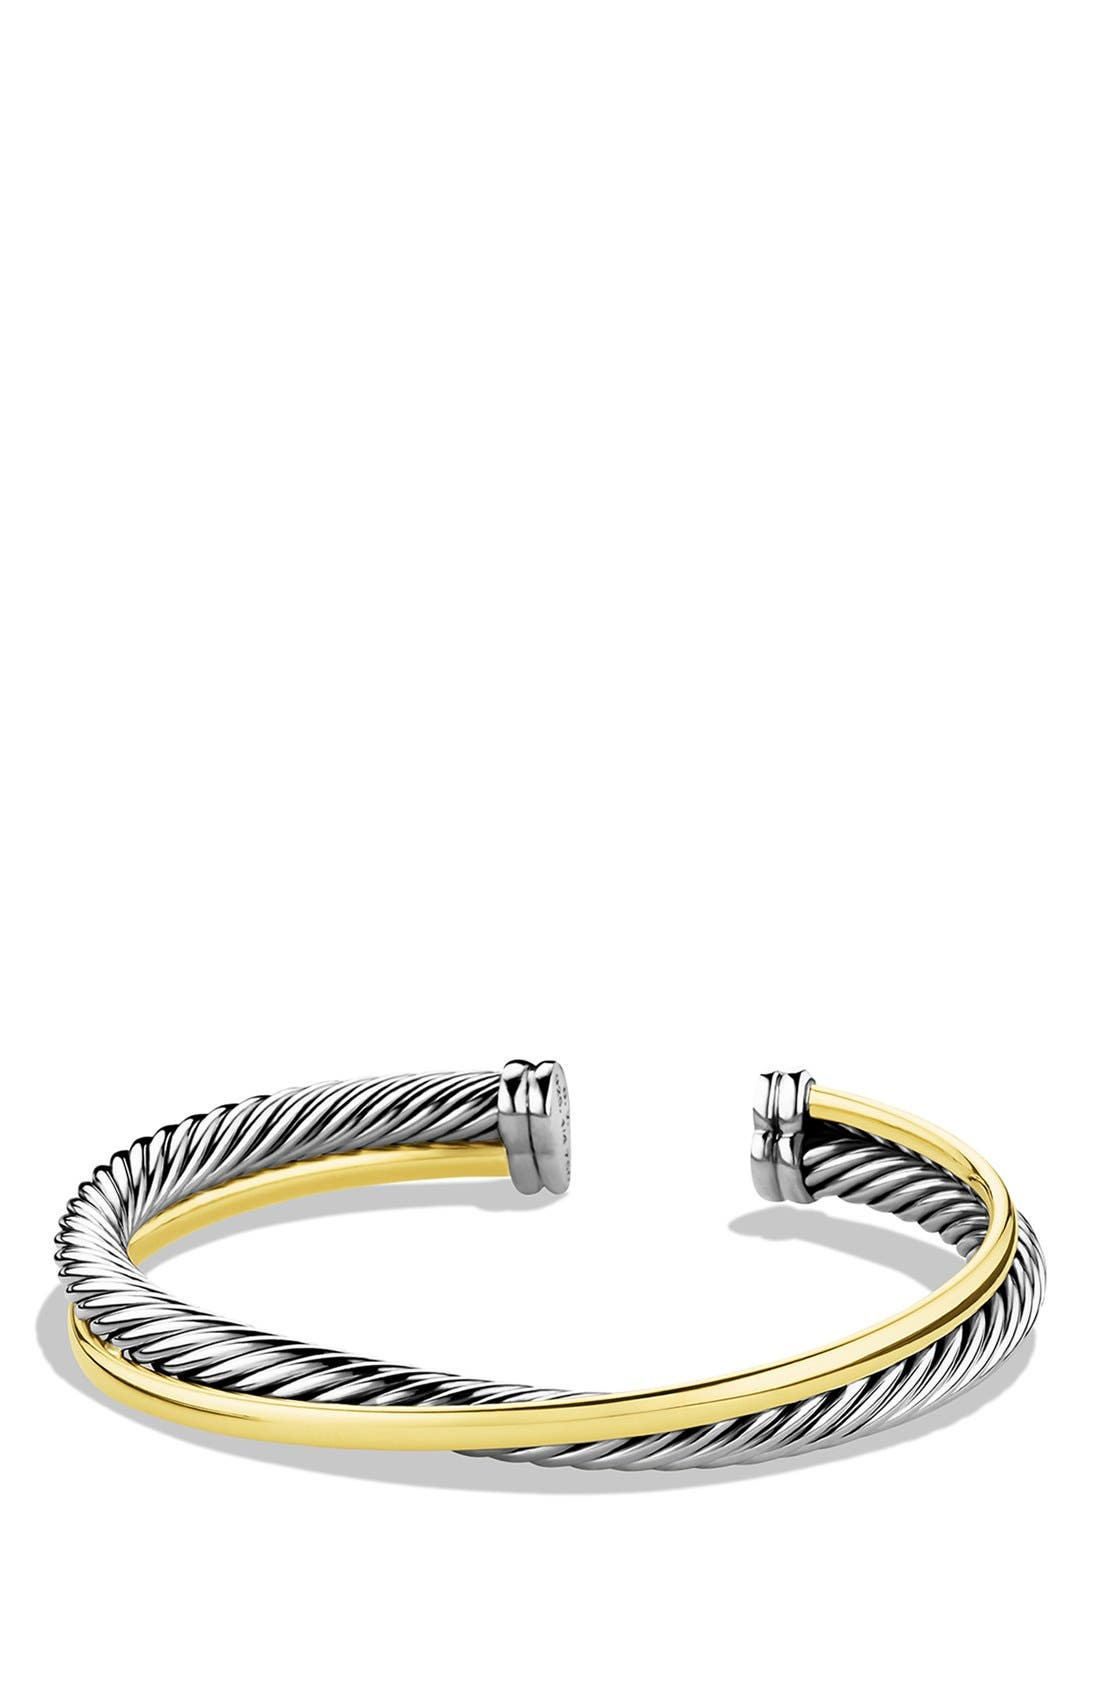 Main Image - David Yurman 'Crossover' Cuff with Gold